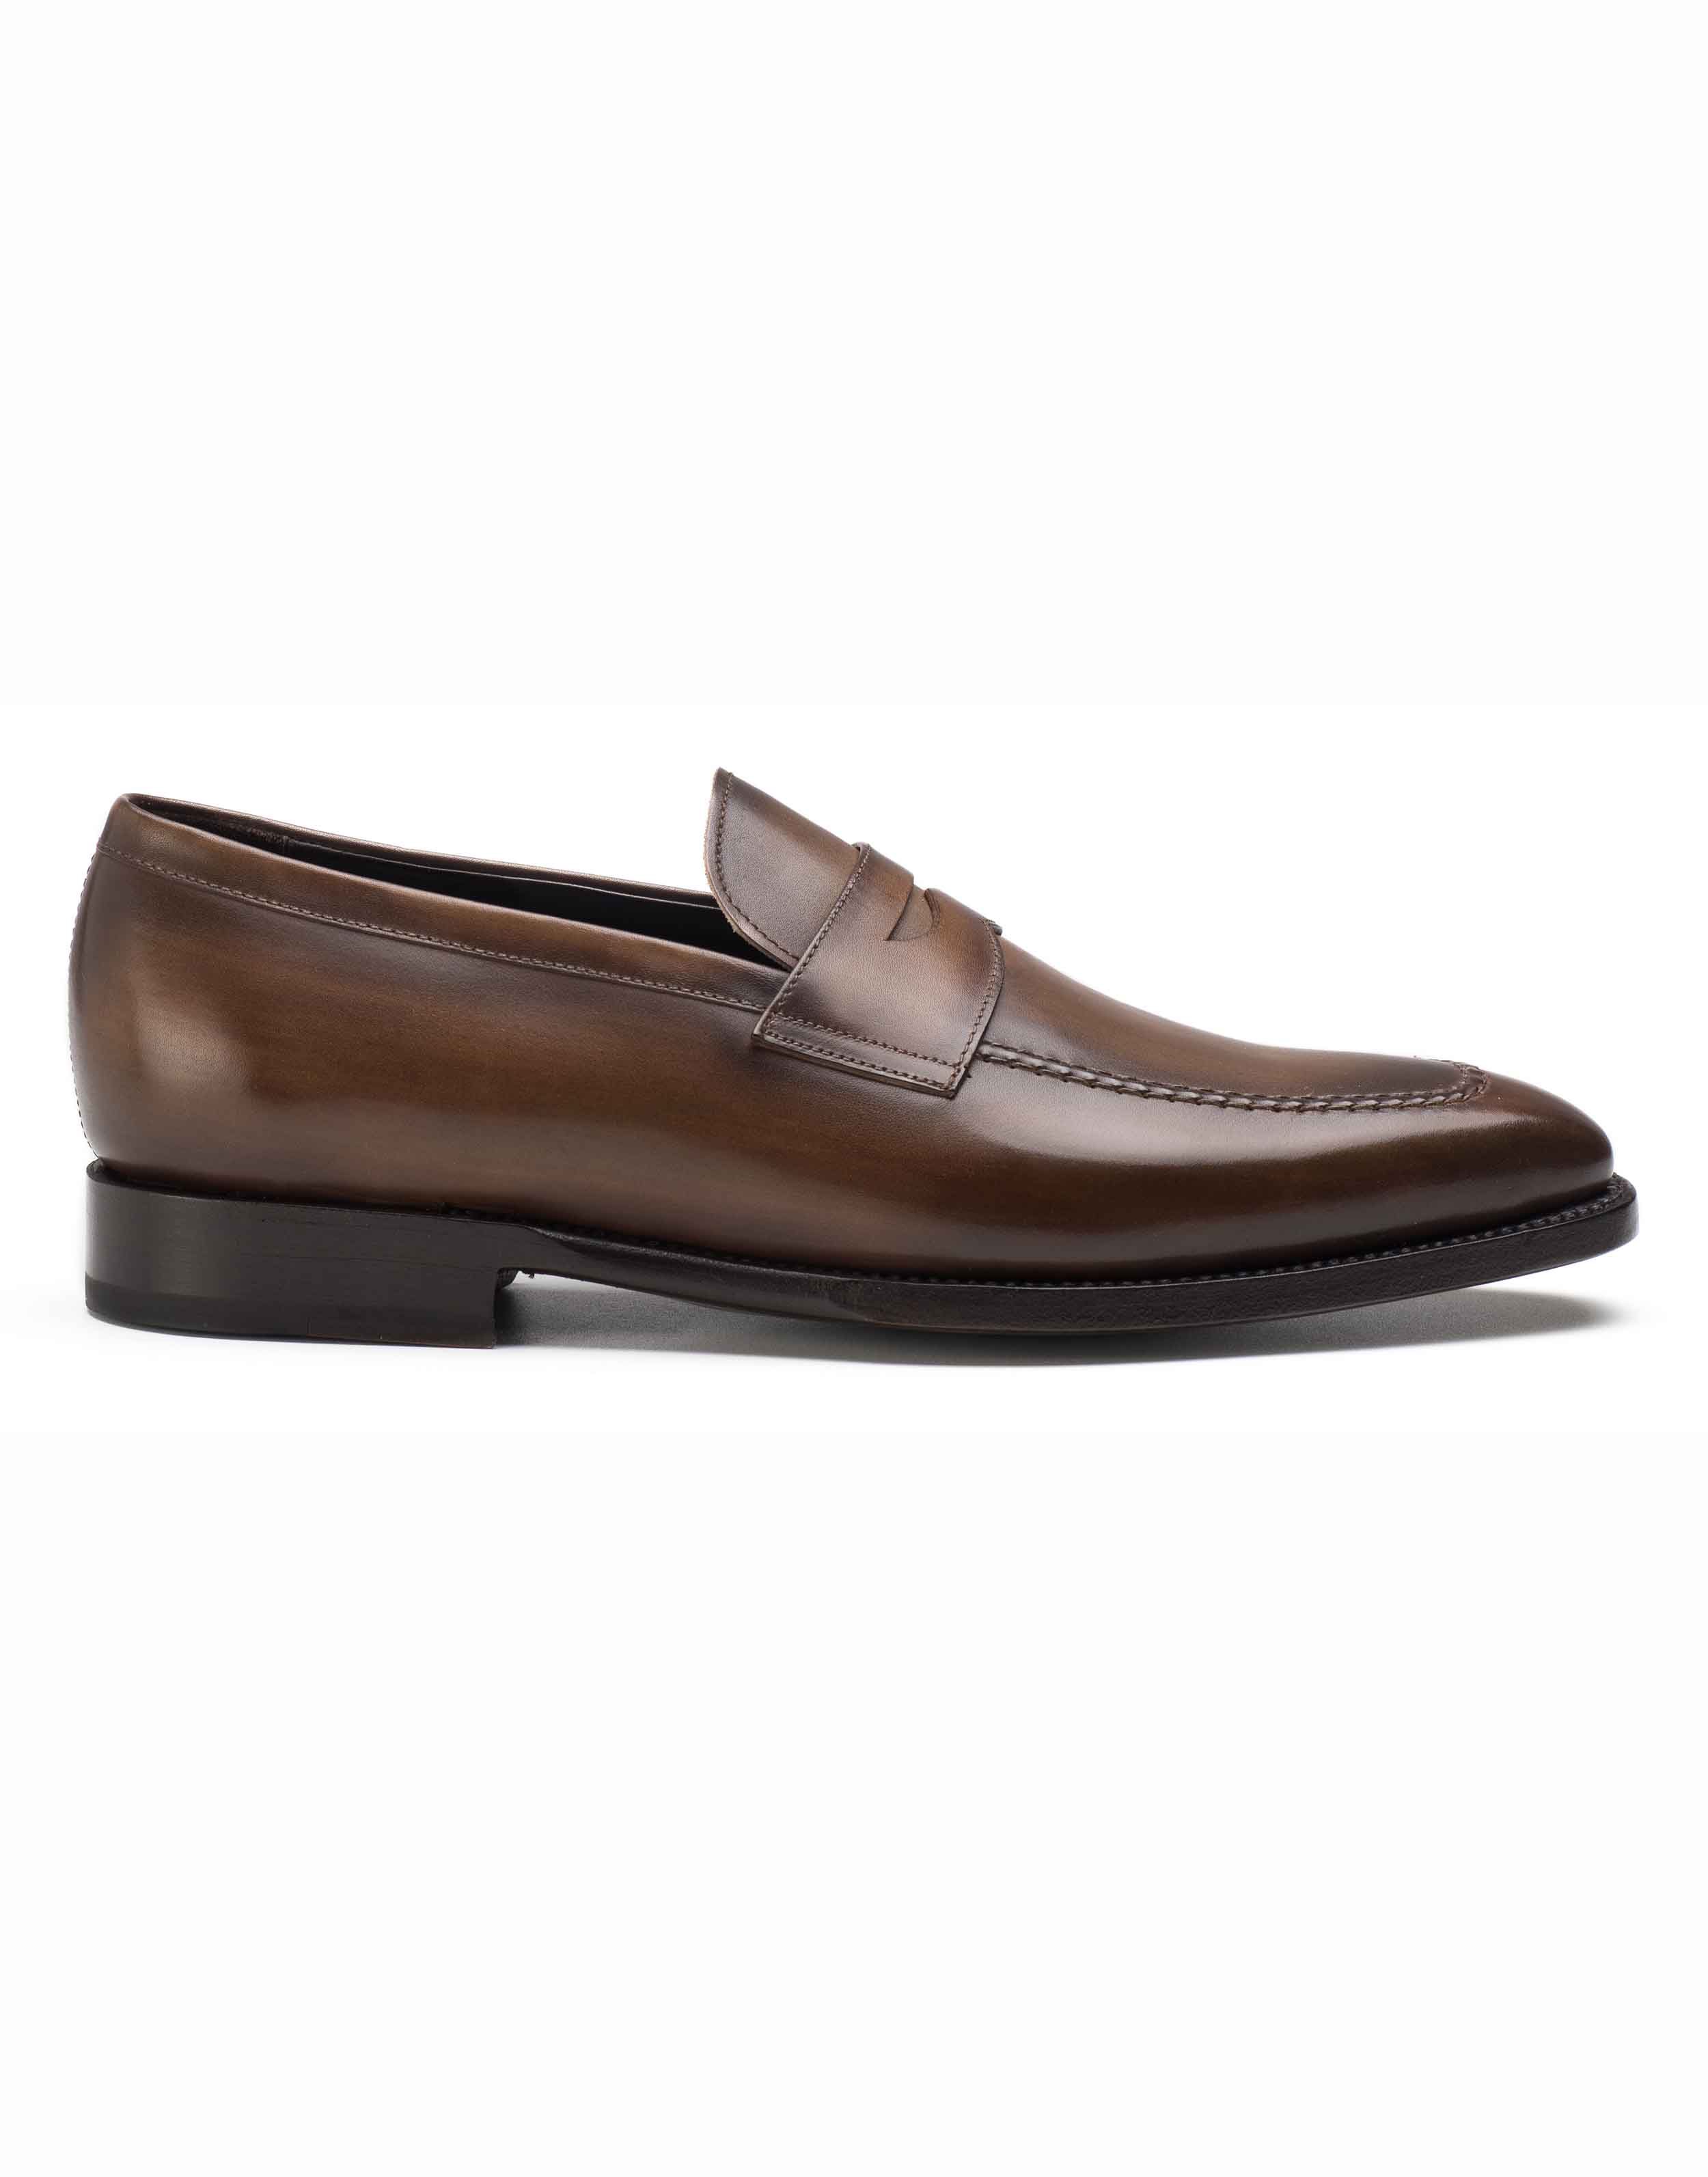 BROWN PENNY LOAFERS1